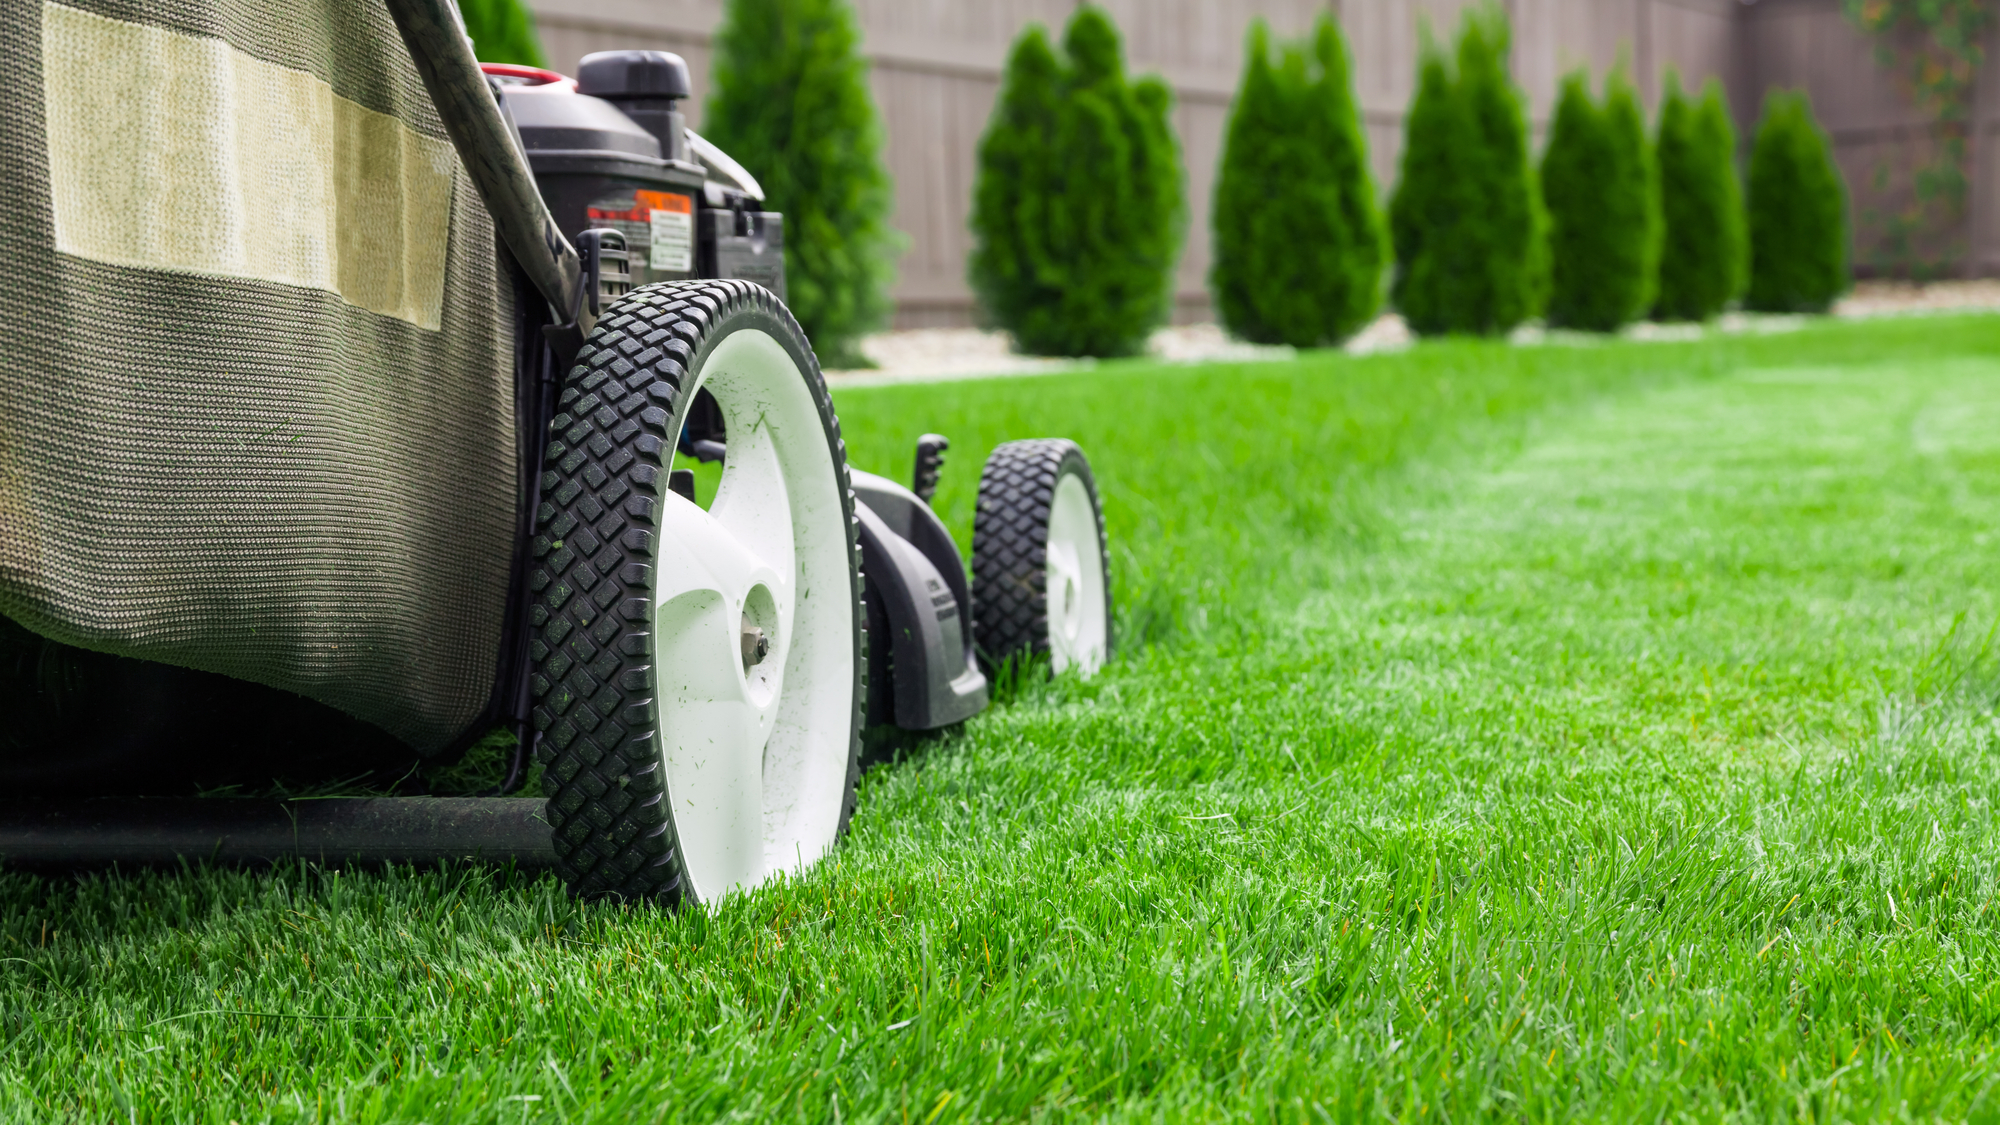 Lawn Care Asset Tracking software